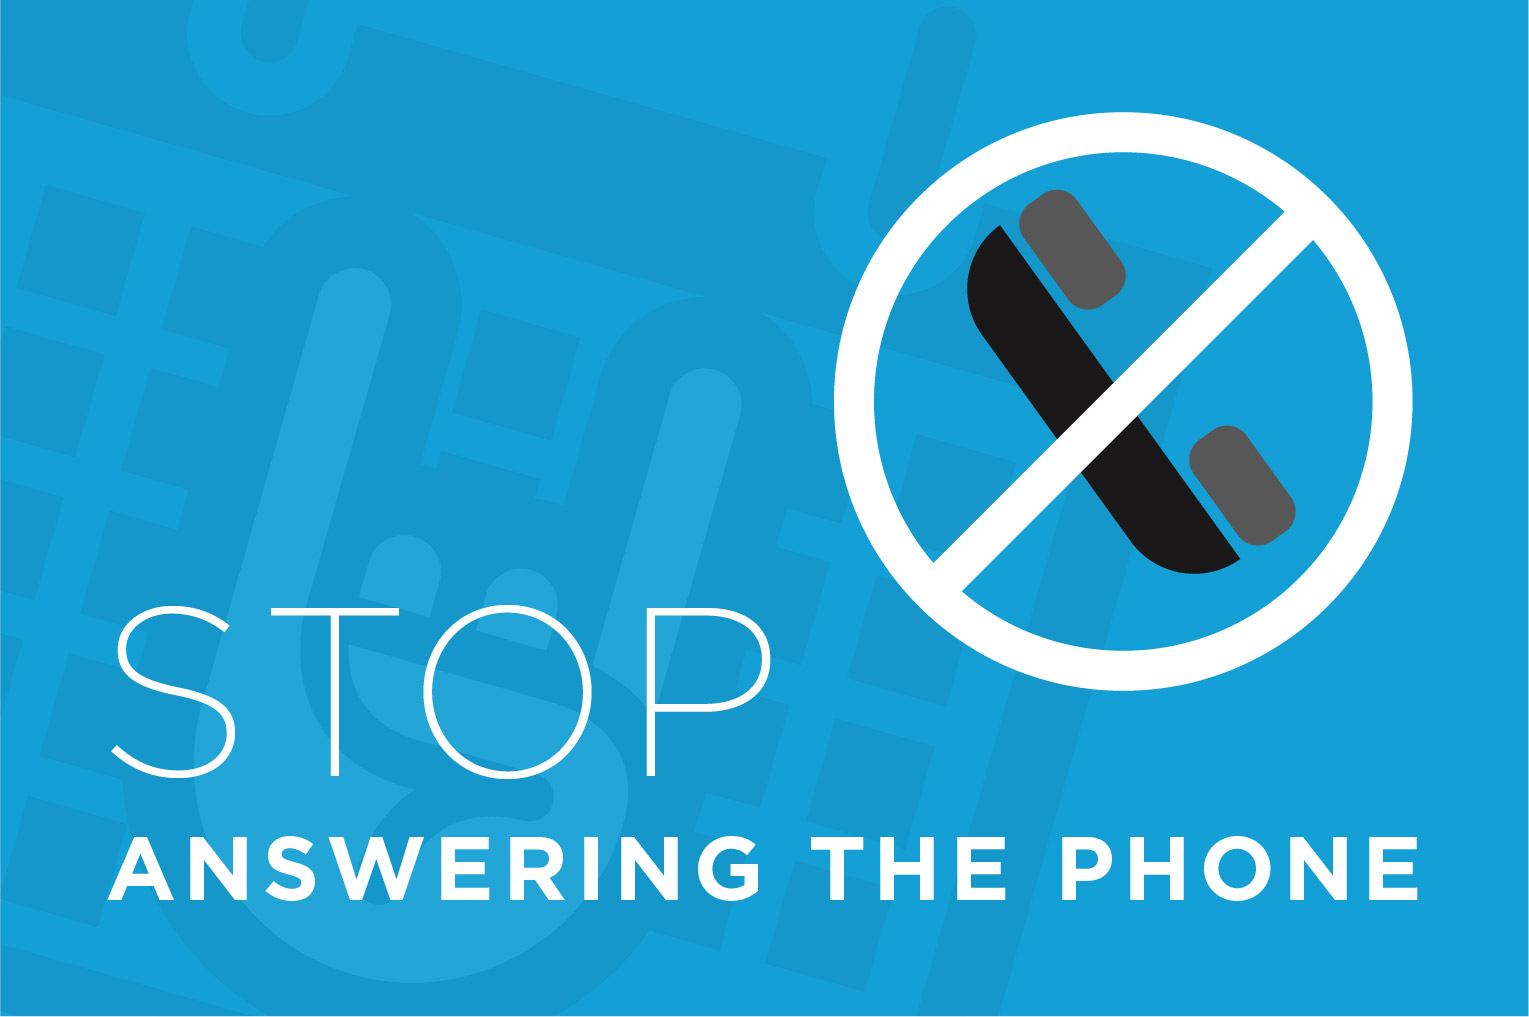 Productivity Advice: Increase Productivity by not answering the phone